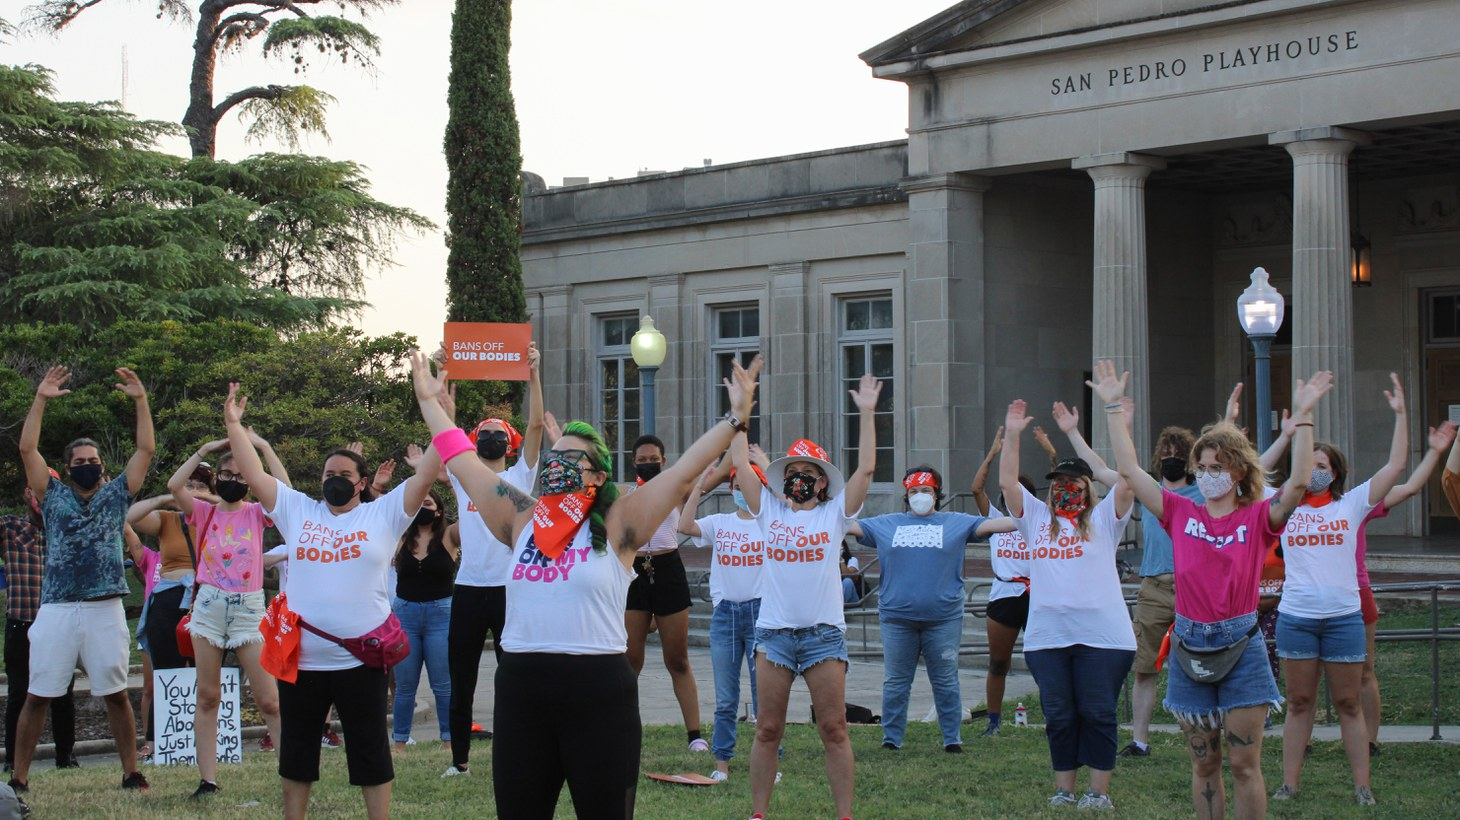 """People participate in """"Bans Off Our Bodies!"""", a performance protest in front of the San Pedro Playhouse in San Antonio, Texas, on September 1, 2021. The demonstration is in response to SB8, a new Texas state law that bans abortion after as six weeks into pregnancy."""